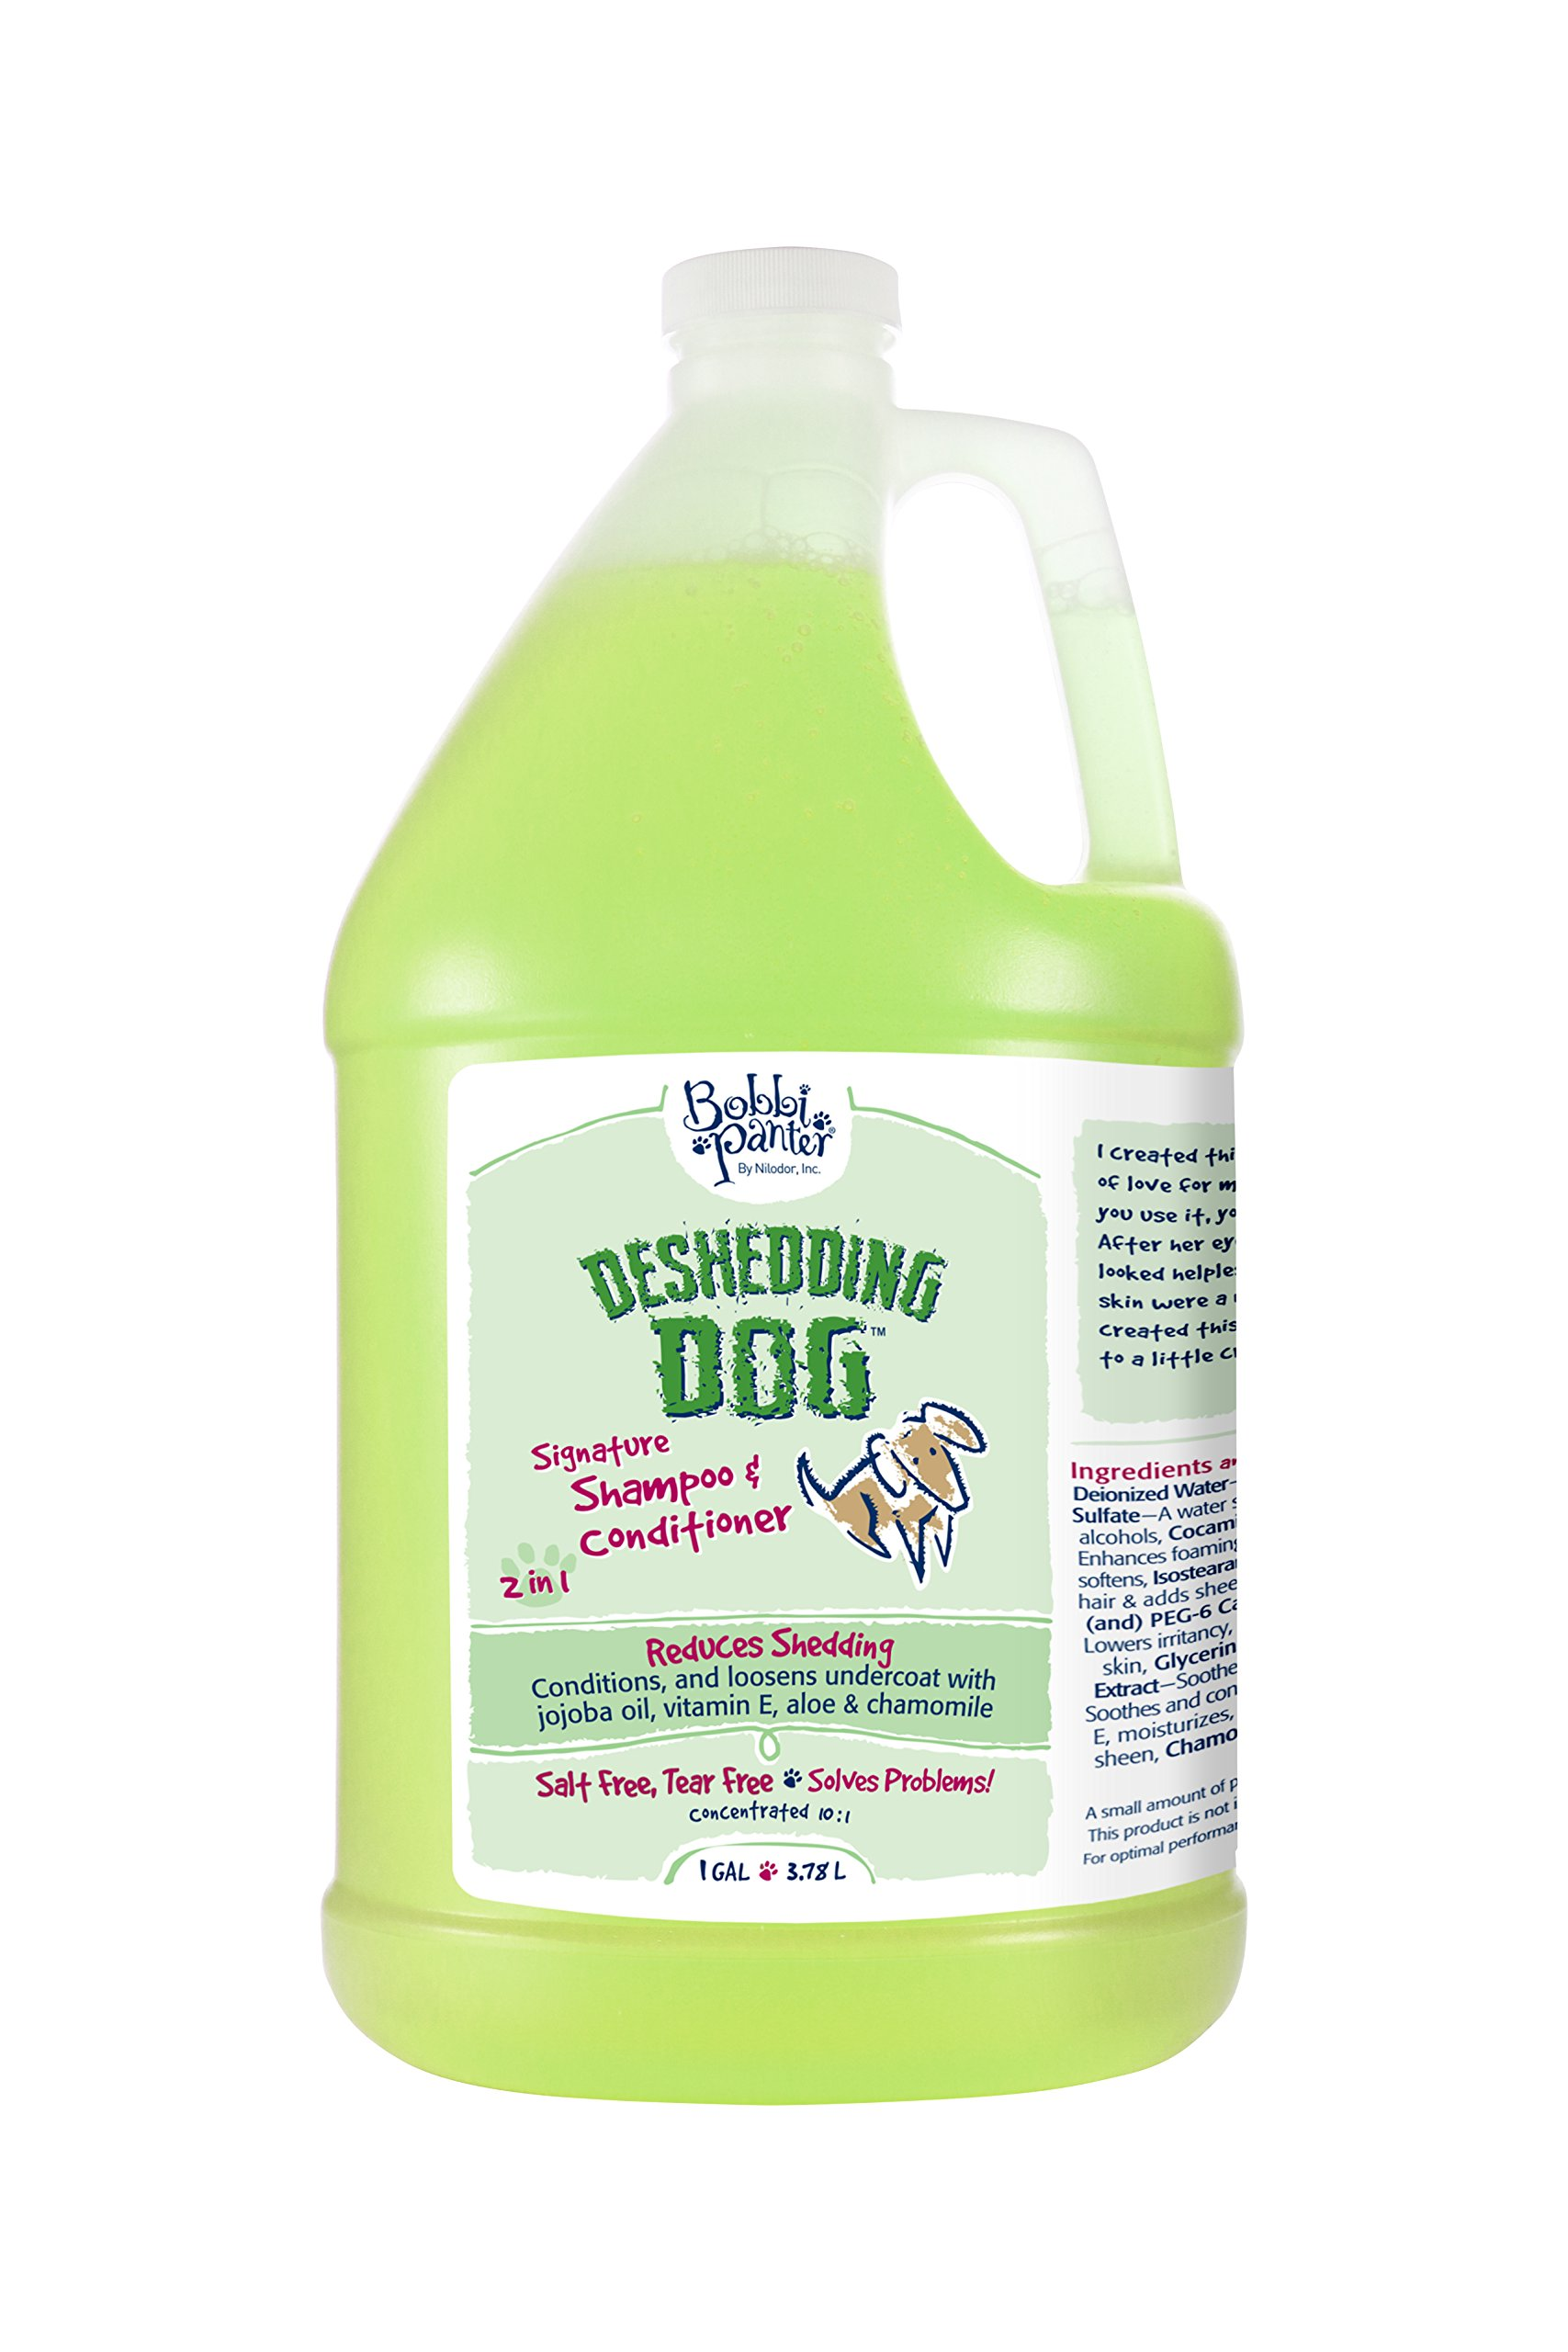 Deshedding Dog Pet Products Bad Hair Day Dog Shampoo, 1-Gallon